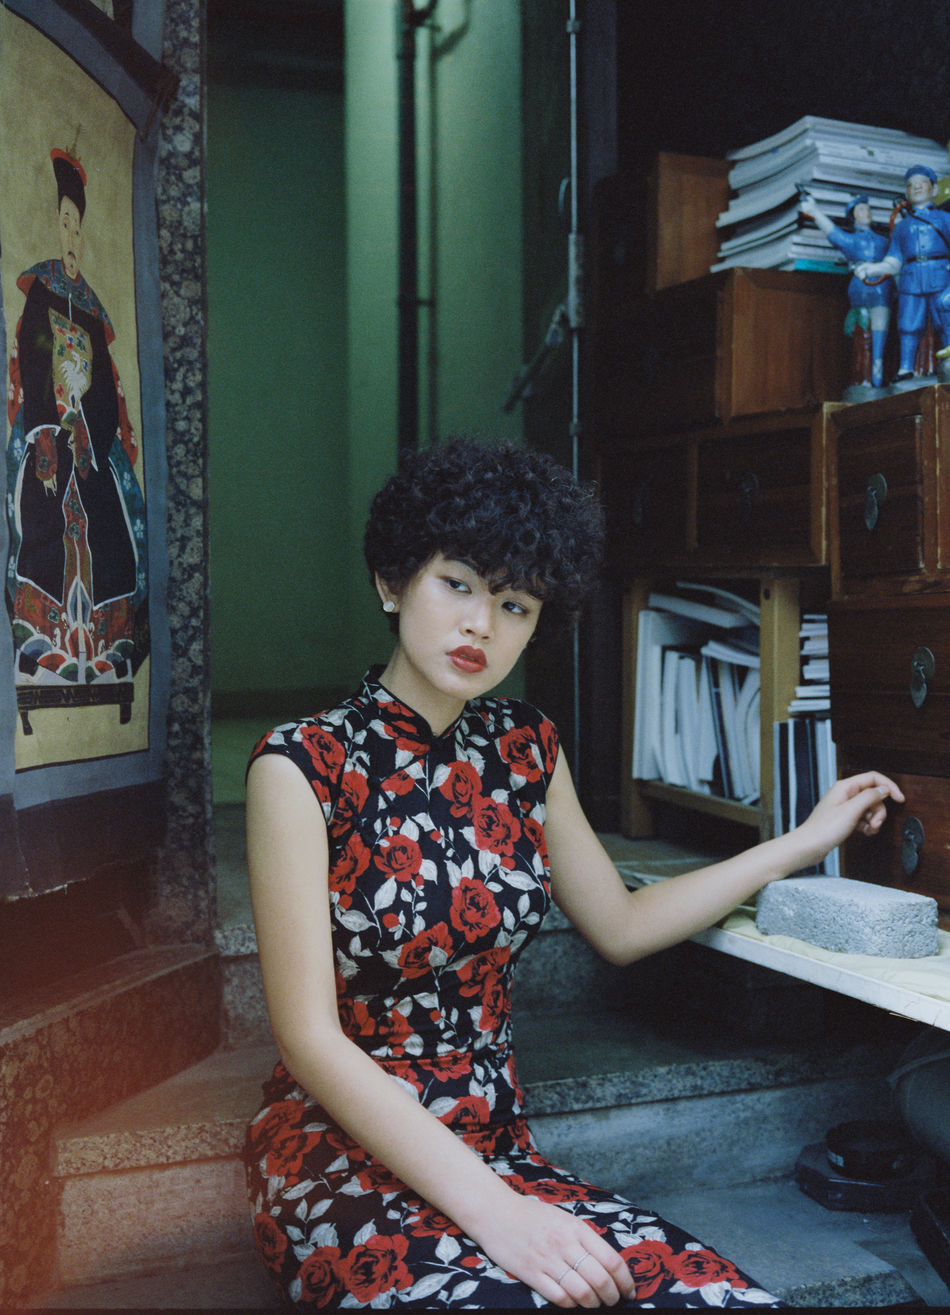 Cheongsam Childhood Curly Hair Day Elementary Age Girls Indoors  Leisure Activity Lifestyles Looking Down One Person People Portrait Radiator Real People Sitting Three Quarter Length Young Adult